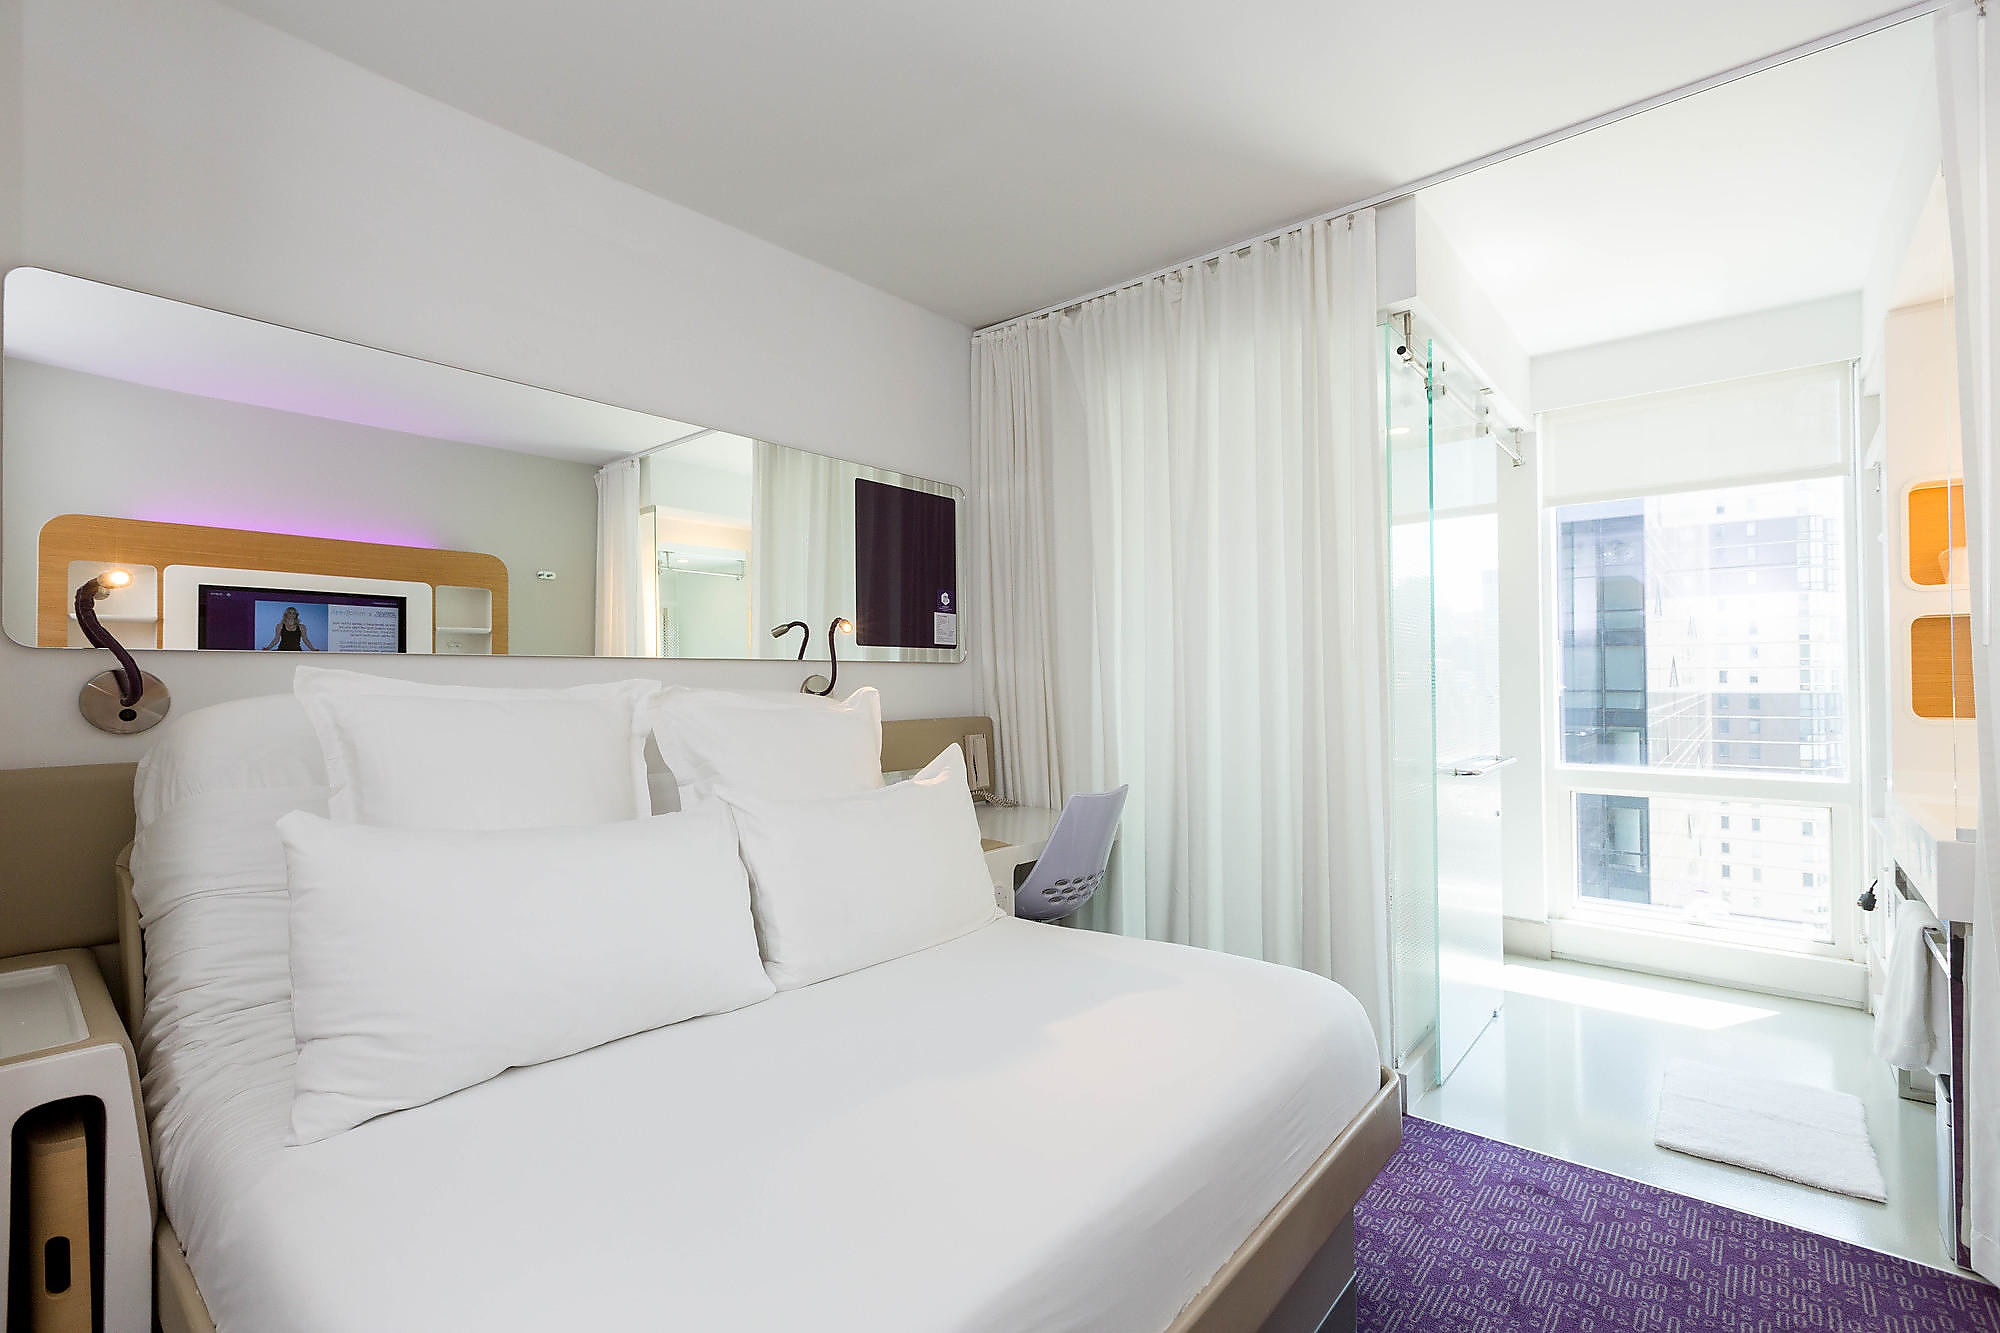 Queen City View Room at YOTEL New York.